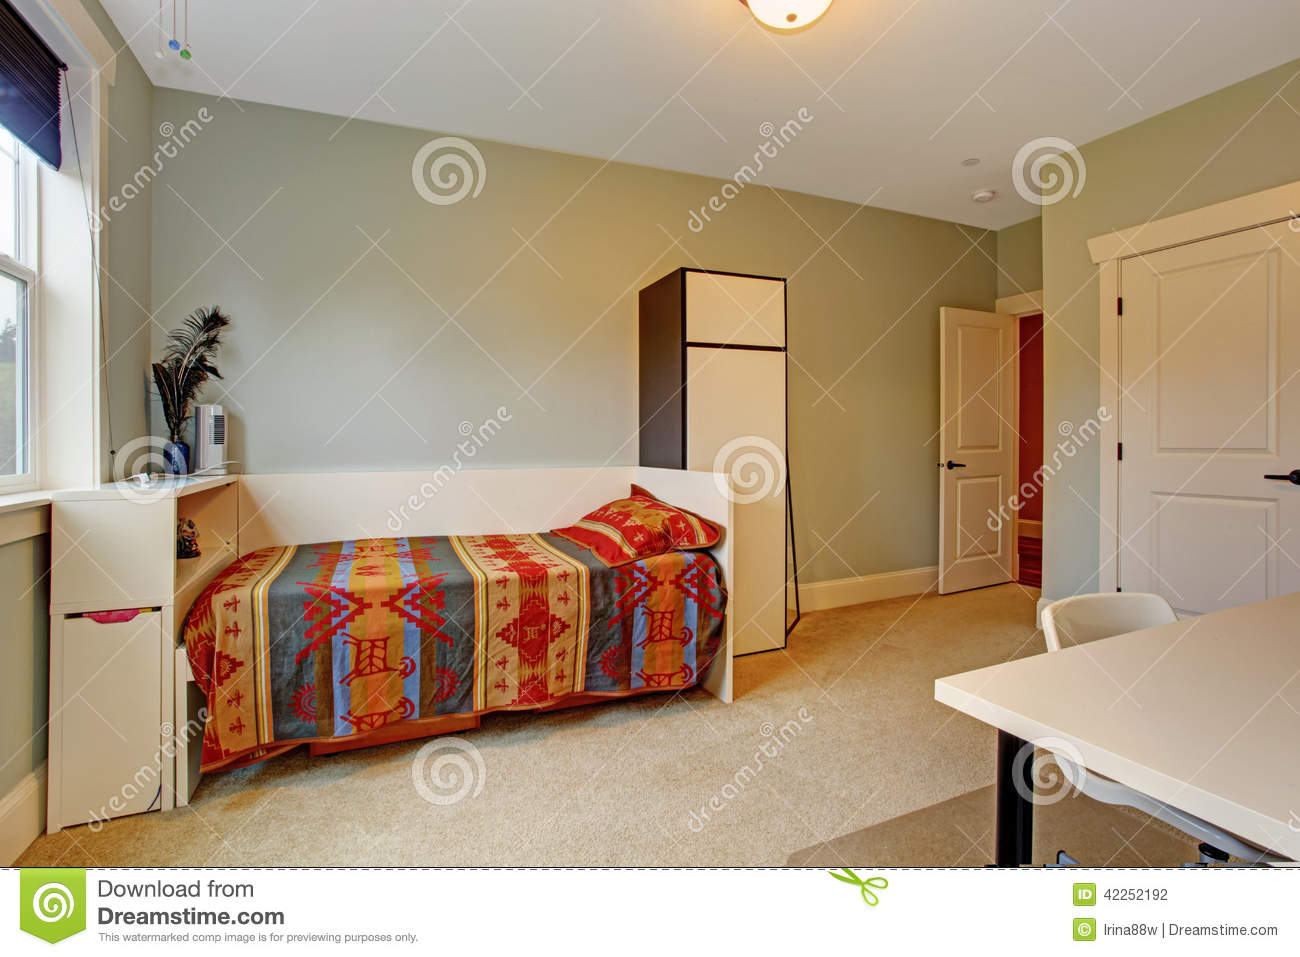 Simple Bedroom With Single Bed simple bedroom interior with single bed stock photo - image: 42252192